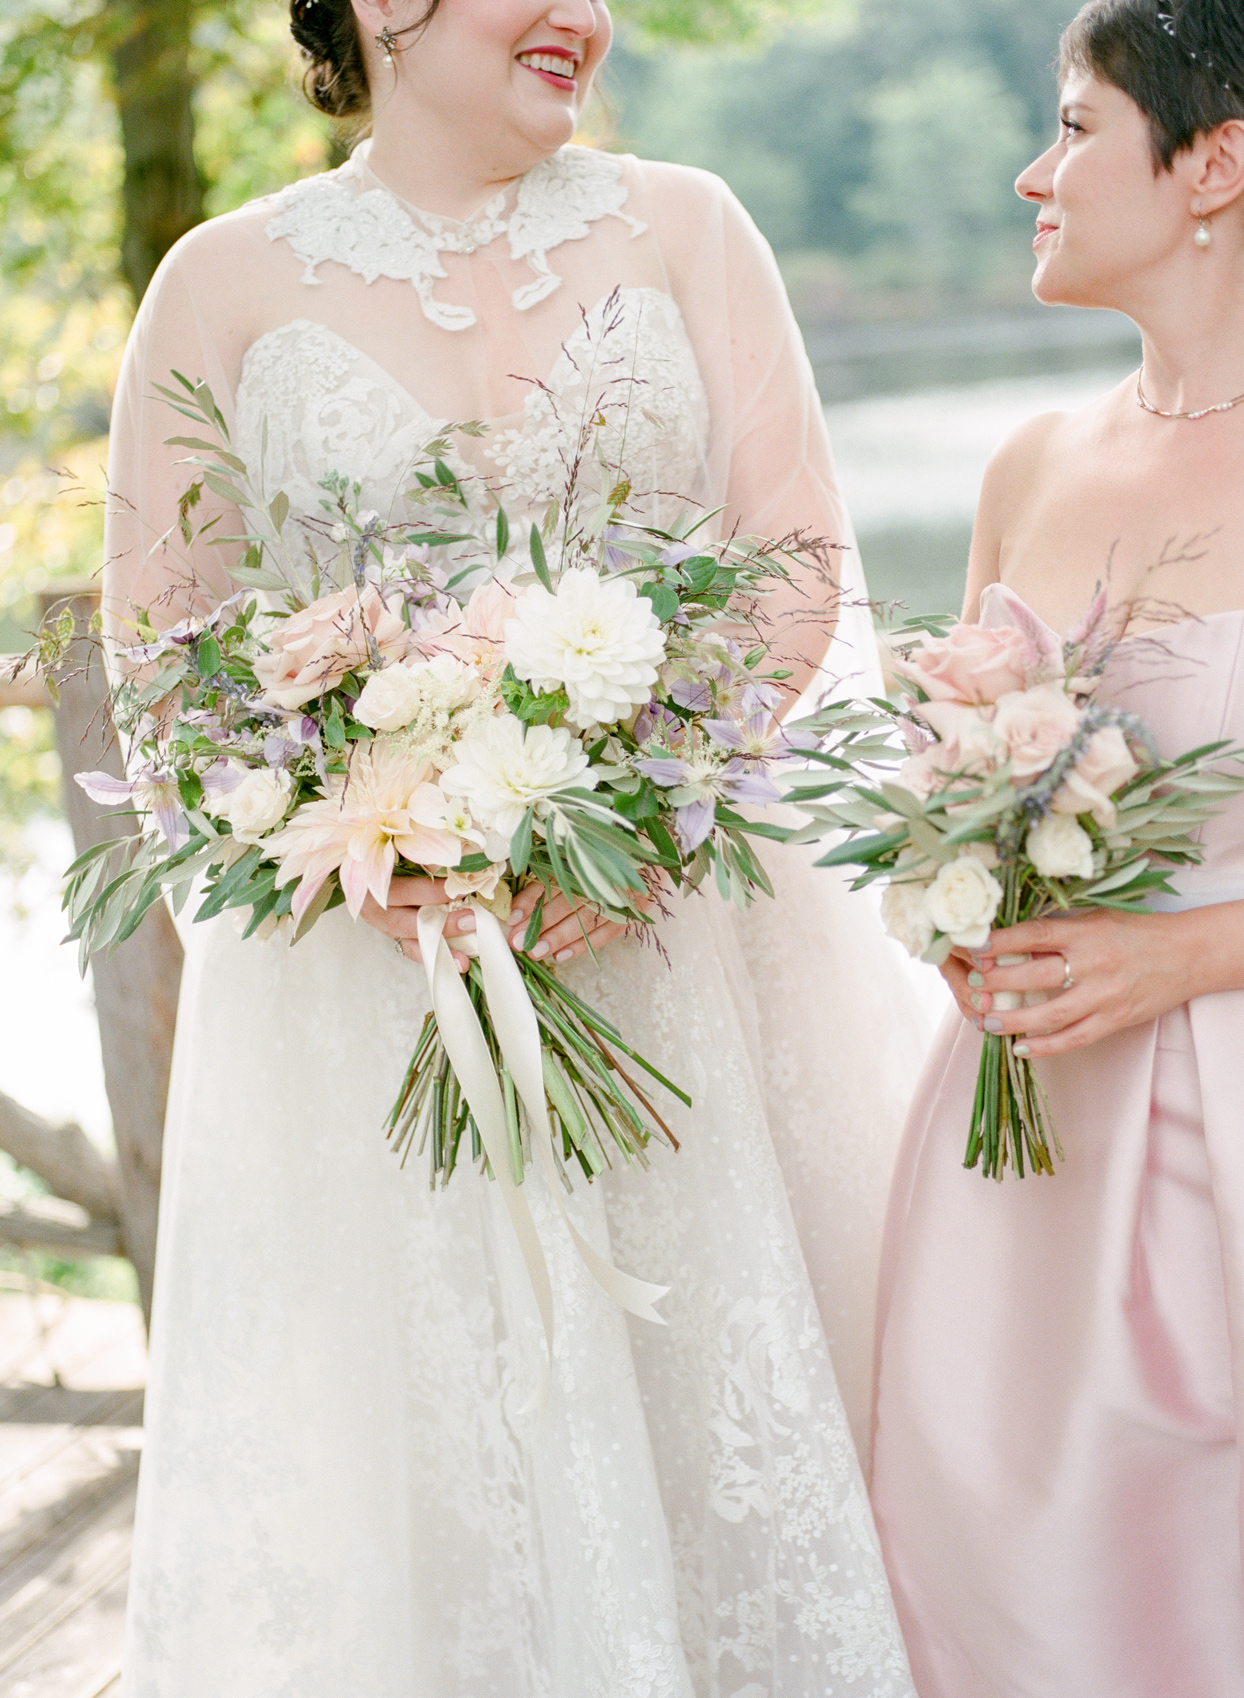 bride and maid of honor holding bouquets of roses and lavender